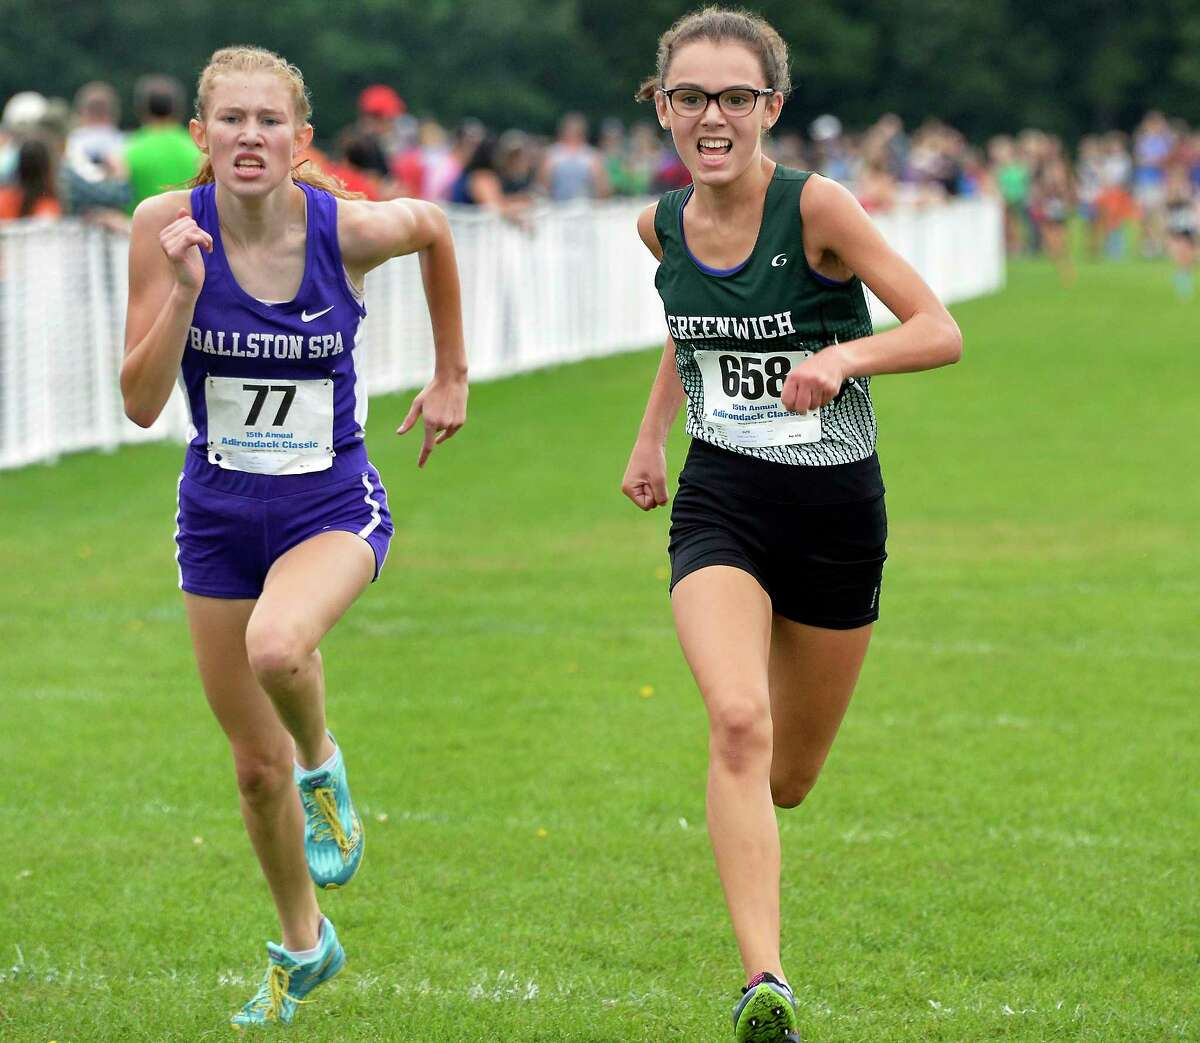 Ballston Spa's Faith DeMars, left, finishes third to Greenwich's Nina Sgambellura second place in the Division I girls race during the 15th annual Adirondack Classic Invitational Saturday Sept. 15, 2018 in Queensbury, NY. (John Carl D'Annibale/Times Union)